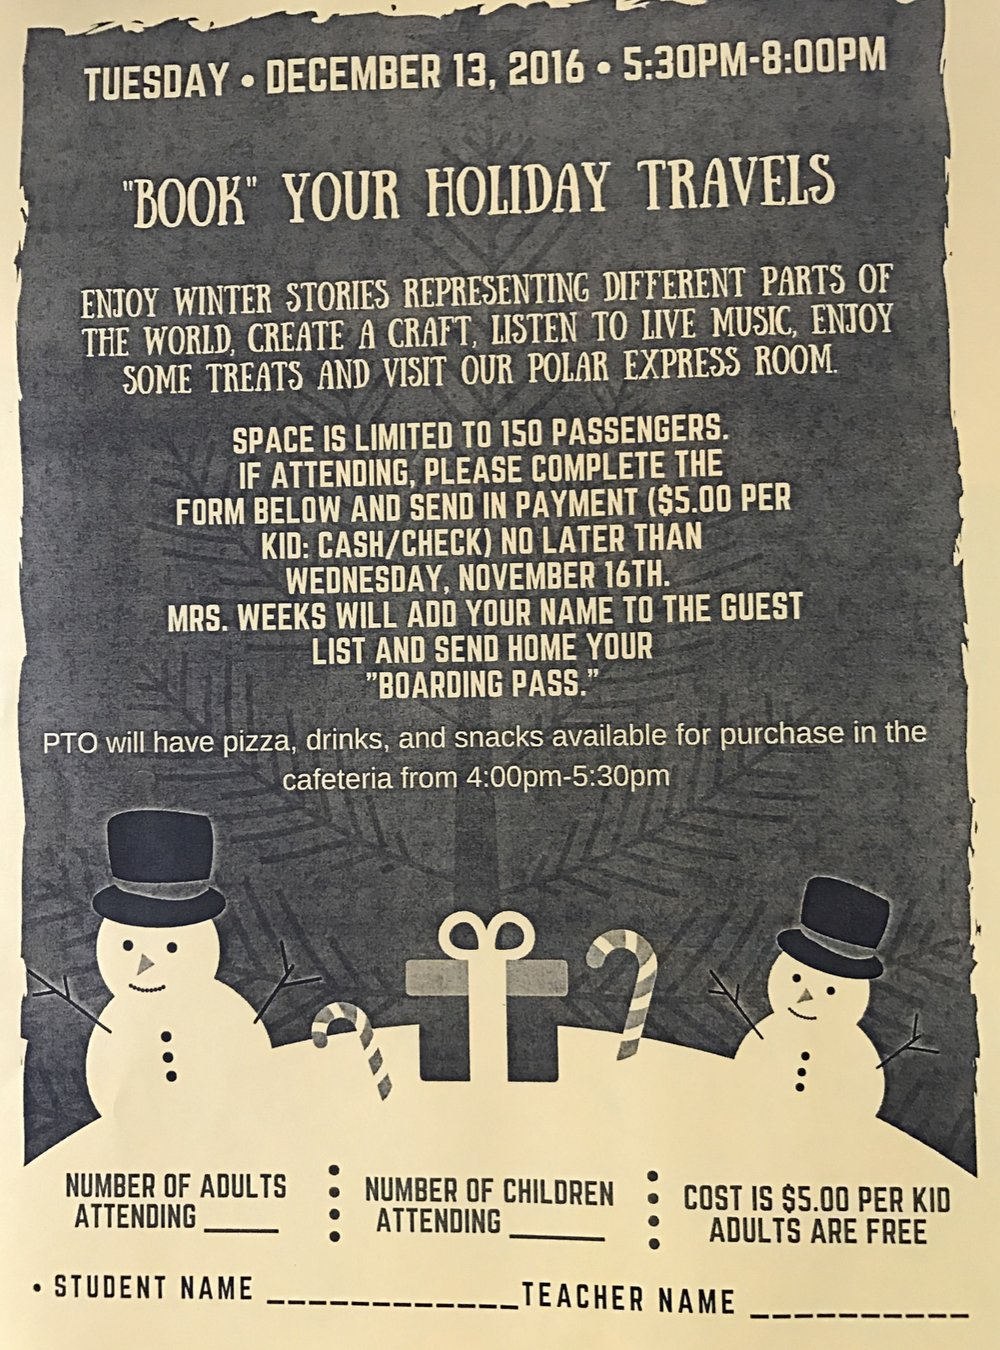 Book Your Holiday Travel Event December 13 5 30 8pm Old Kings